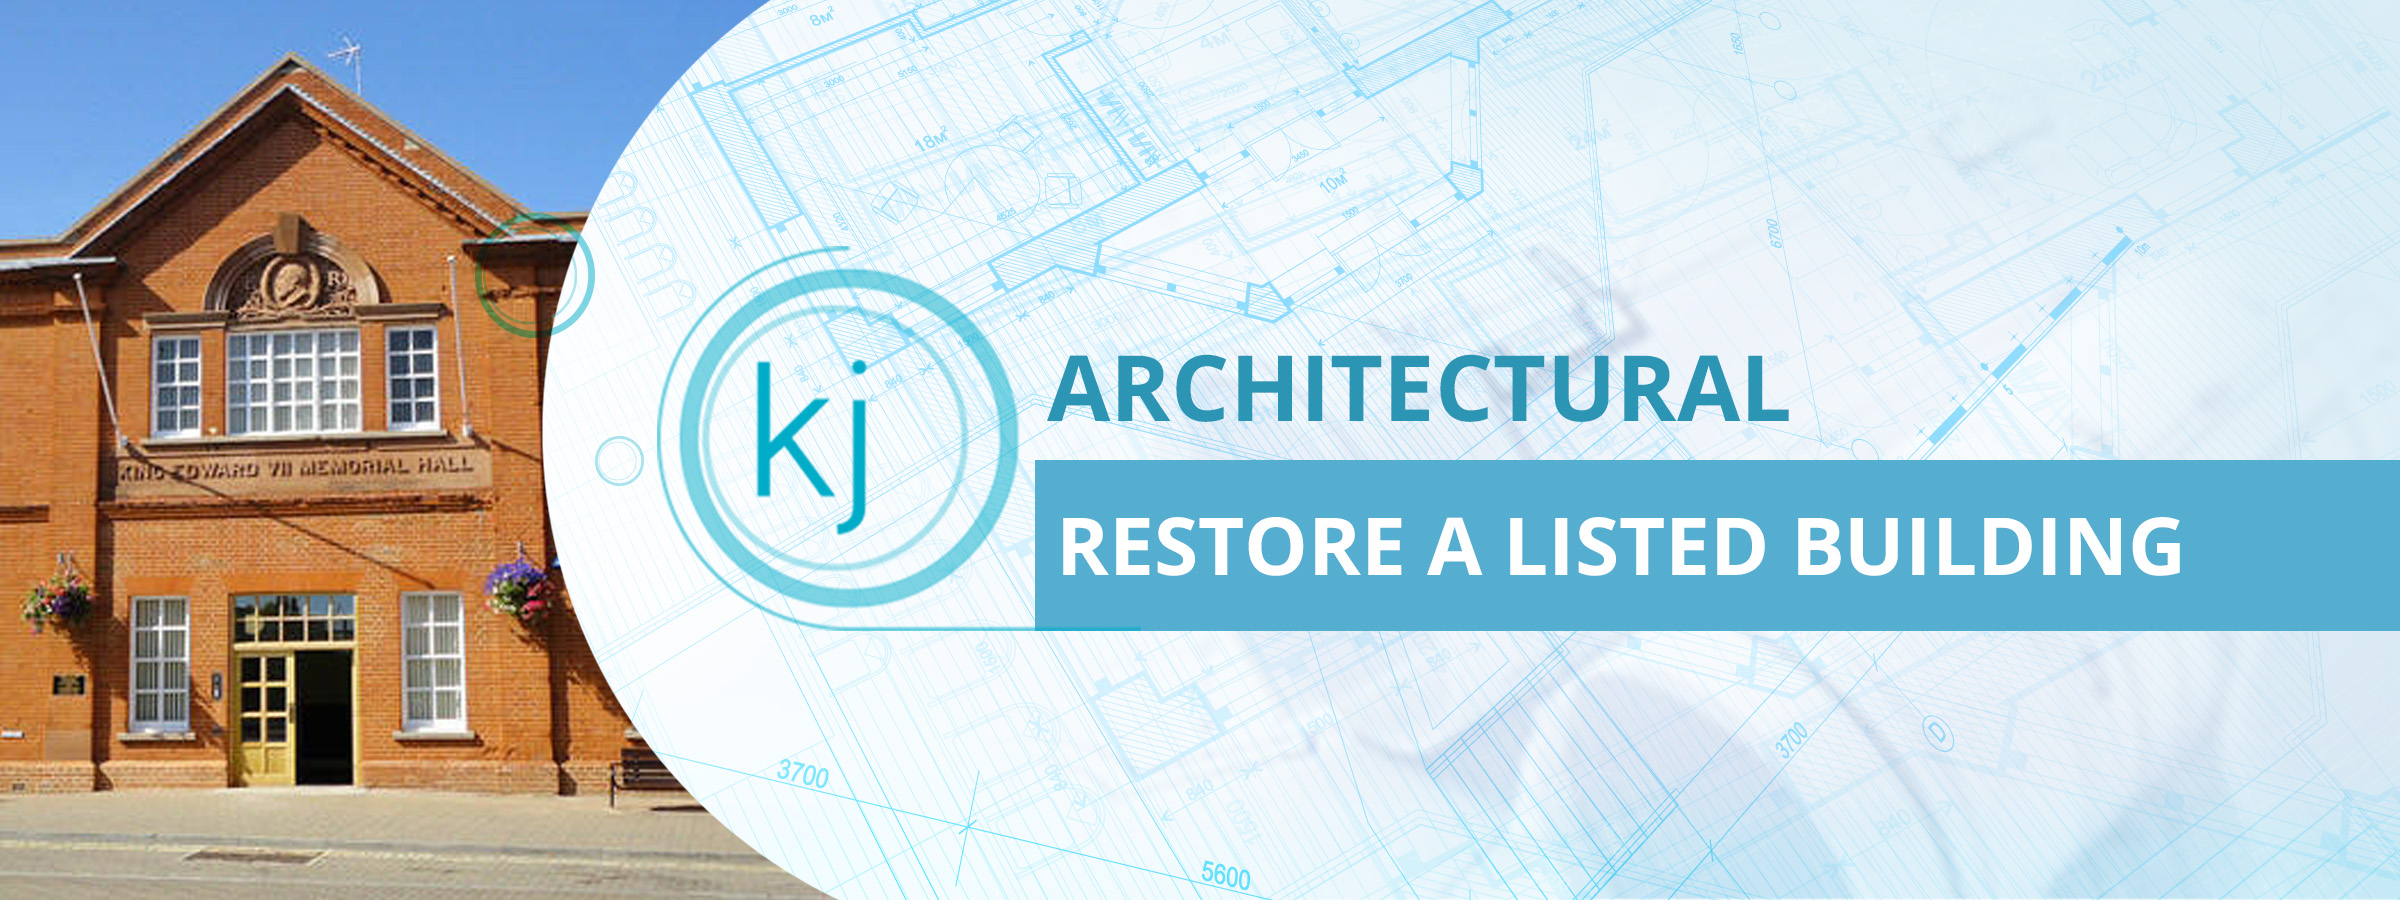 Restore a listed building